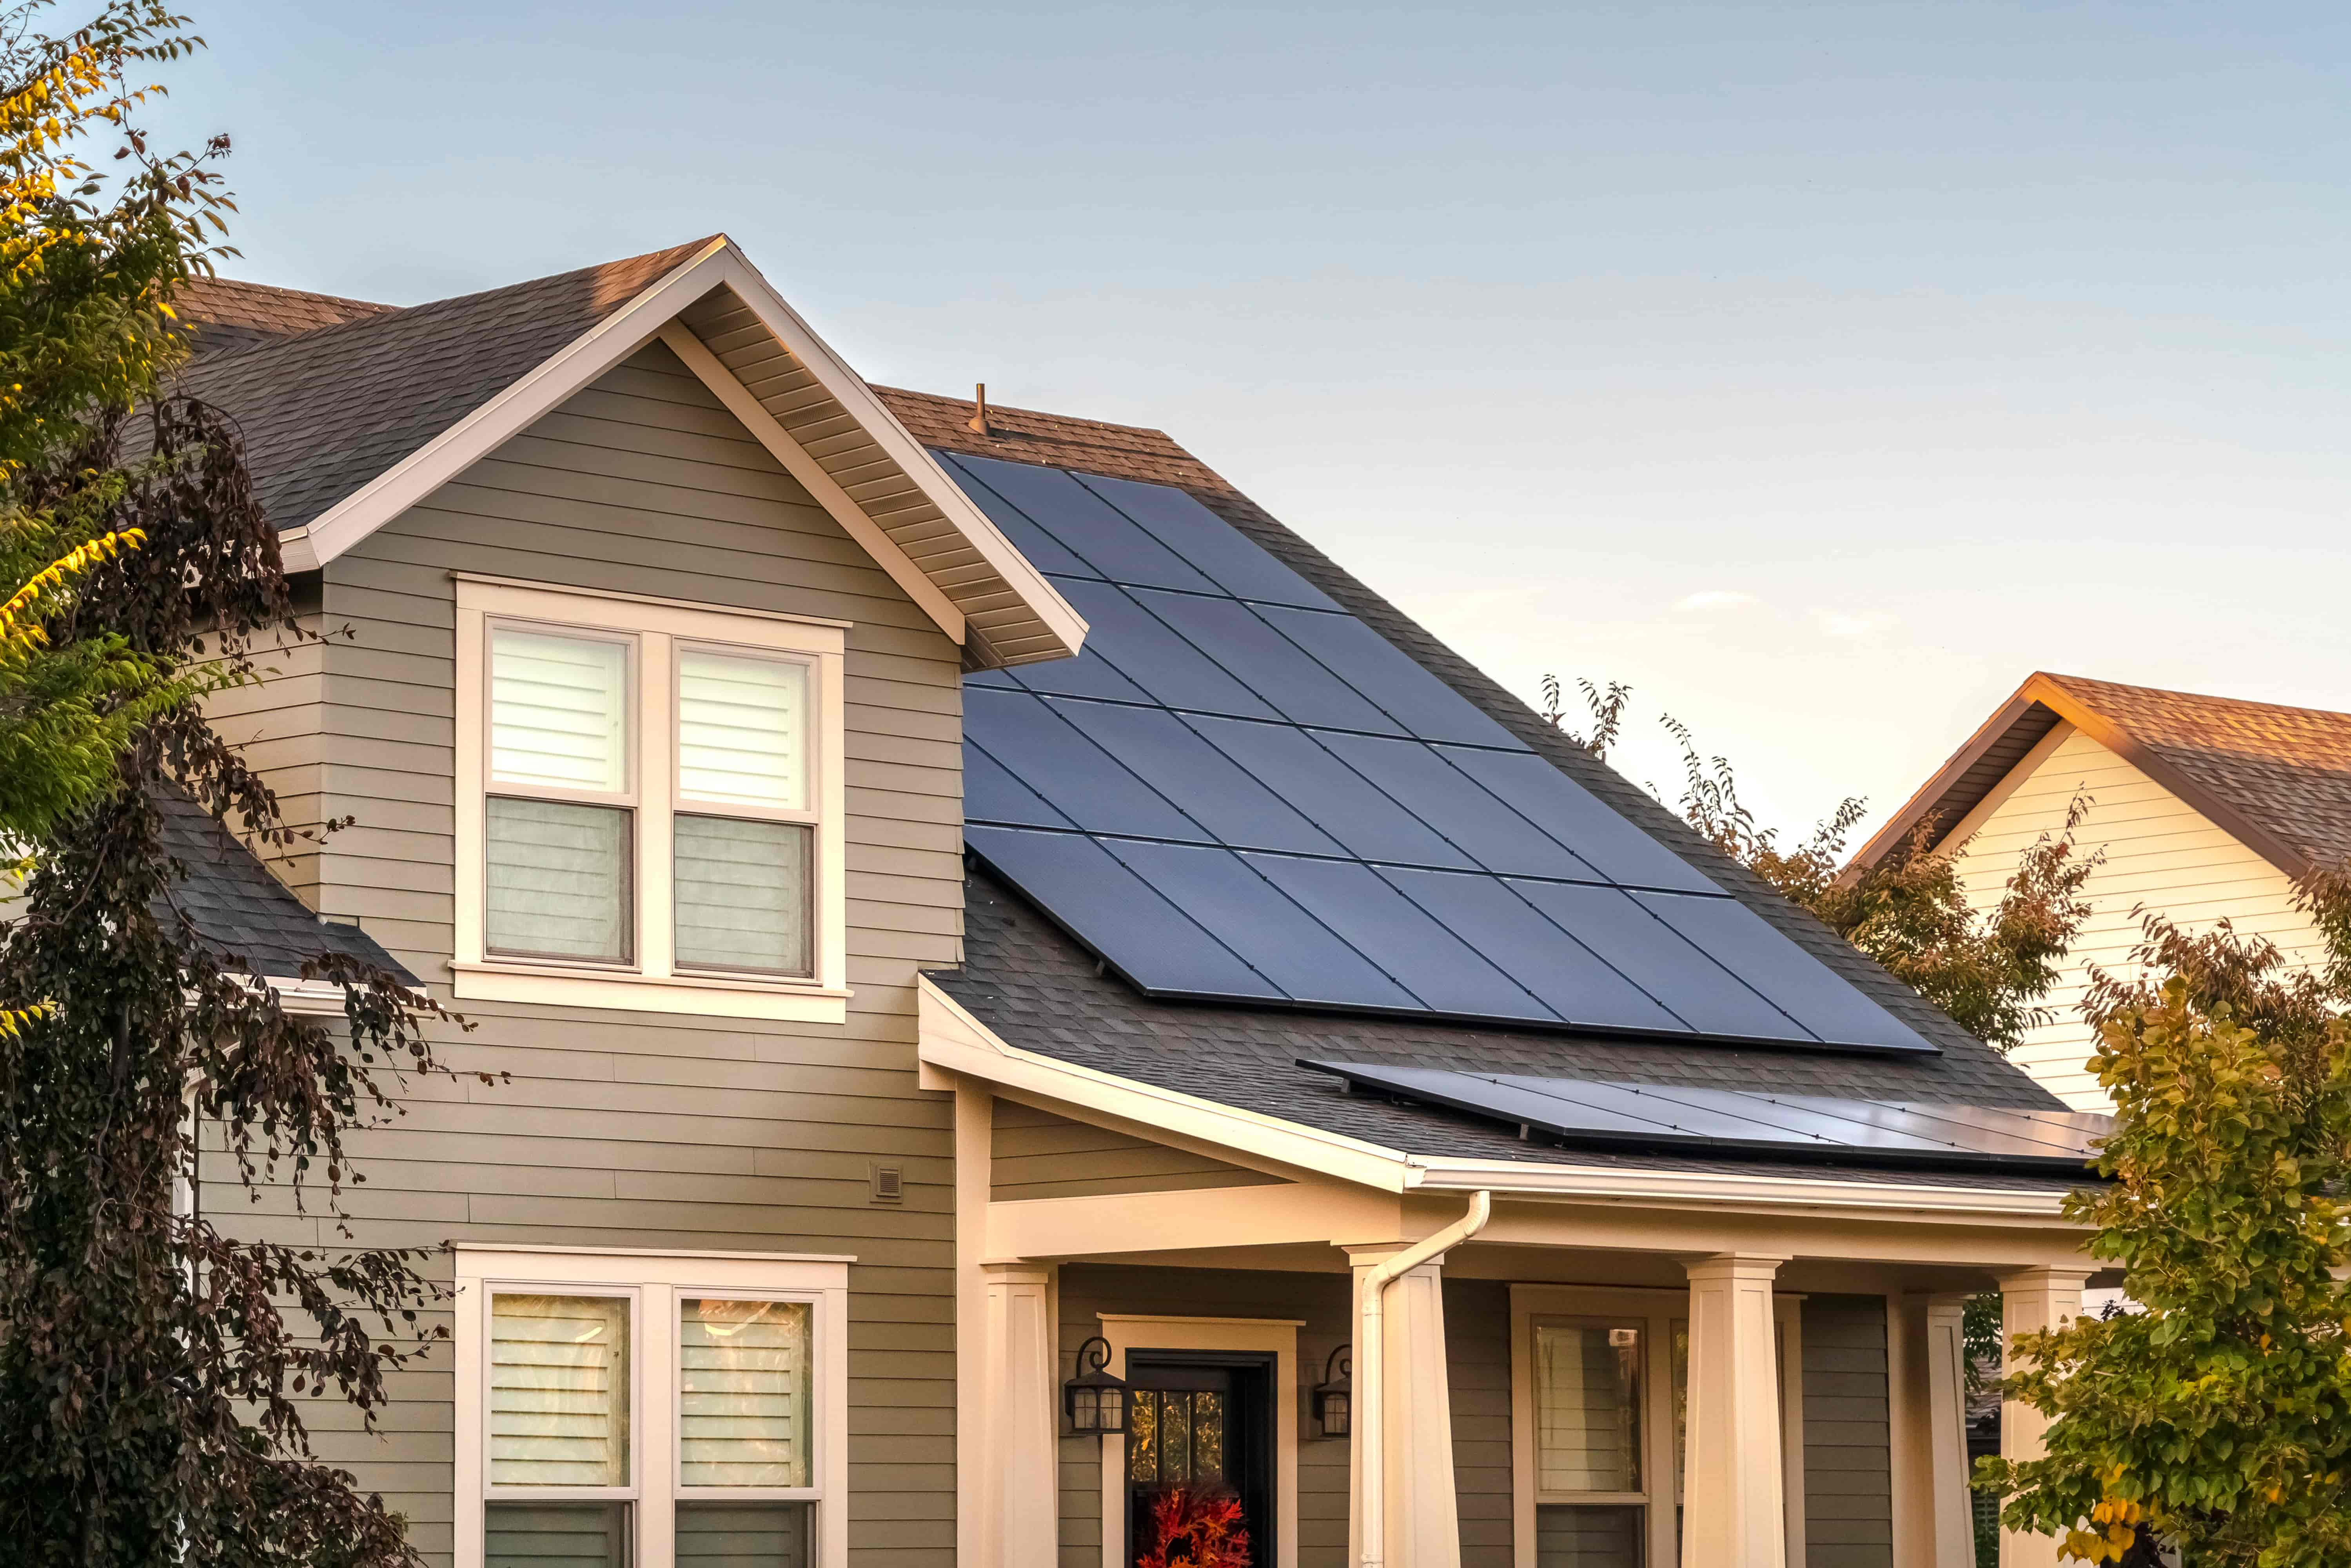 where is the best location for home solar panels?